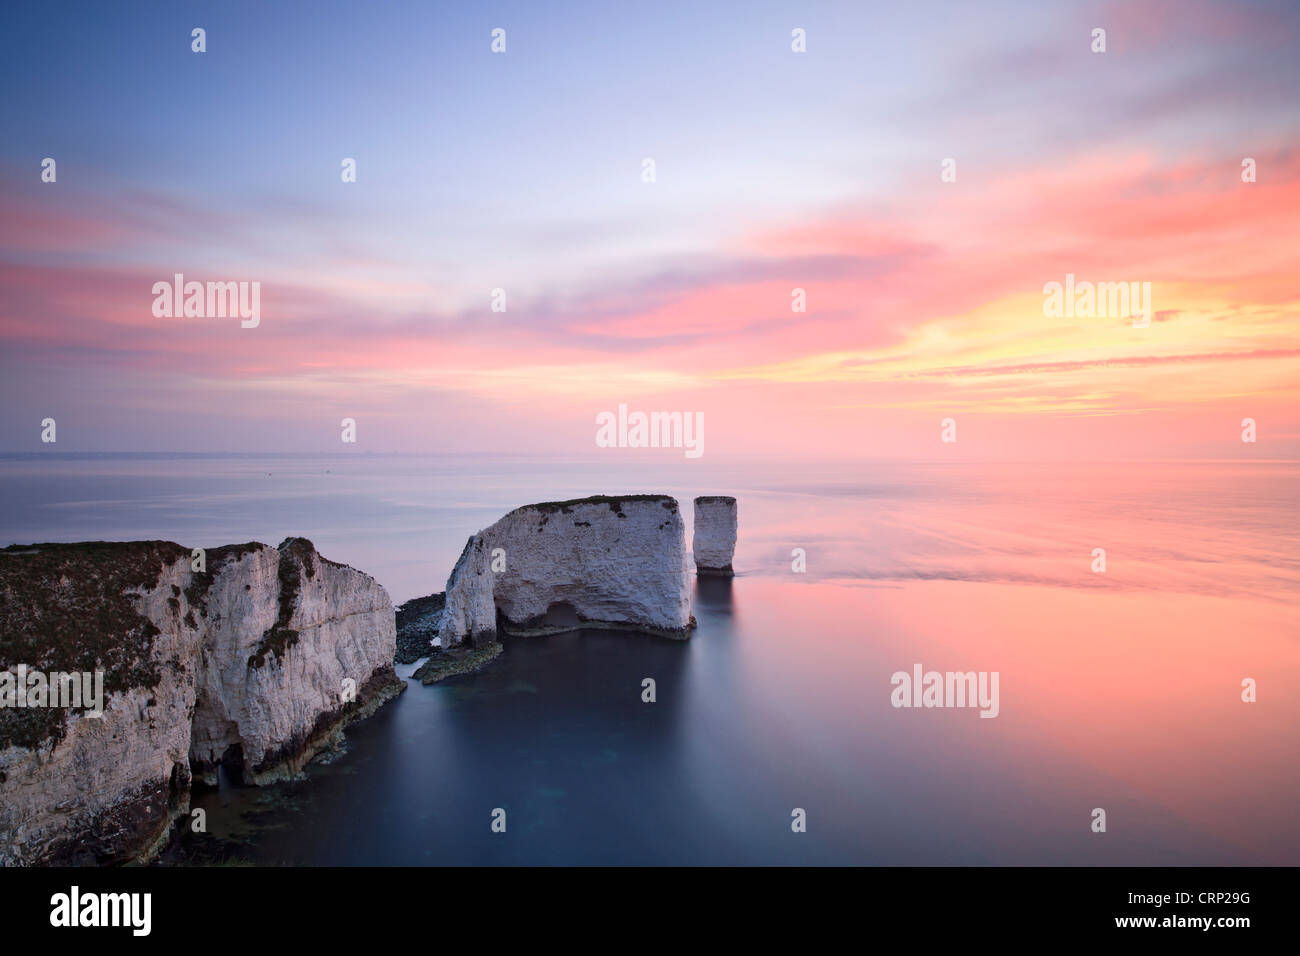 Sunrise at Old Harry Rocks on Dorset's Jurassic Coast world heritage site near Swanage. Stock Photo